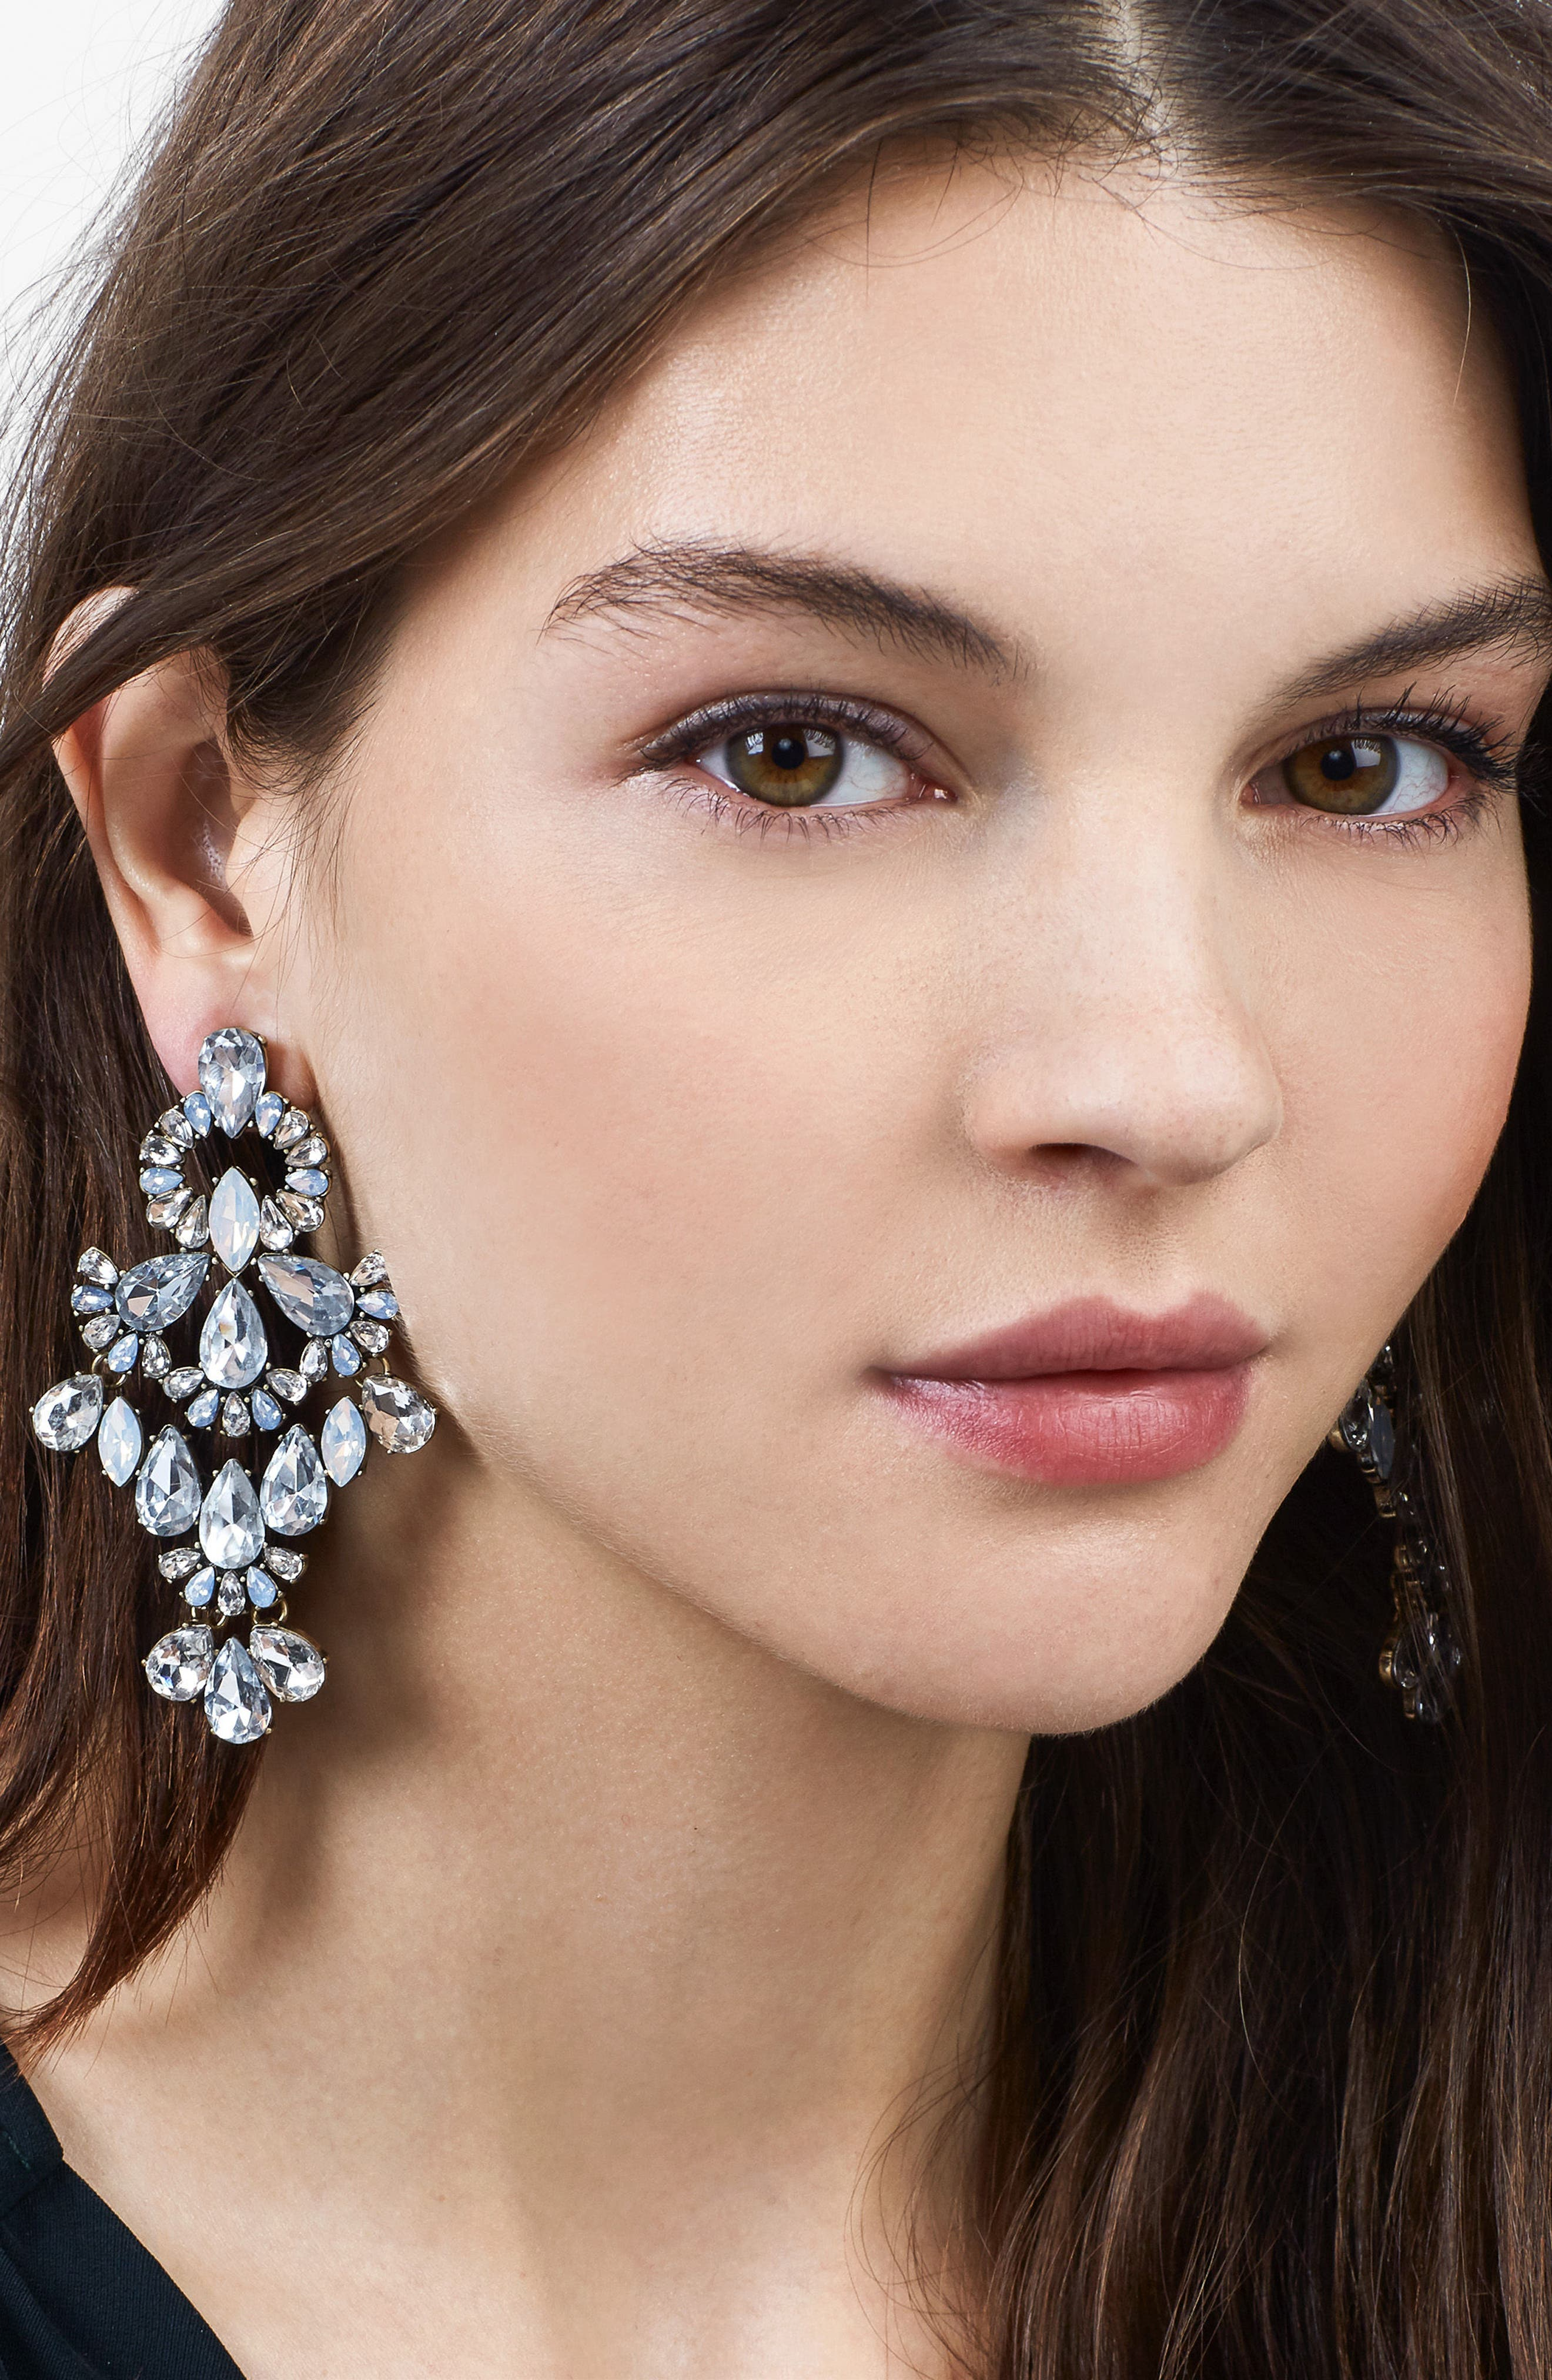 Symphony Crystal Statement Earrings,                             Alternate thumbnail 2, color,                             040